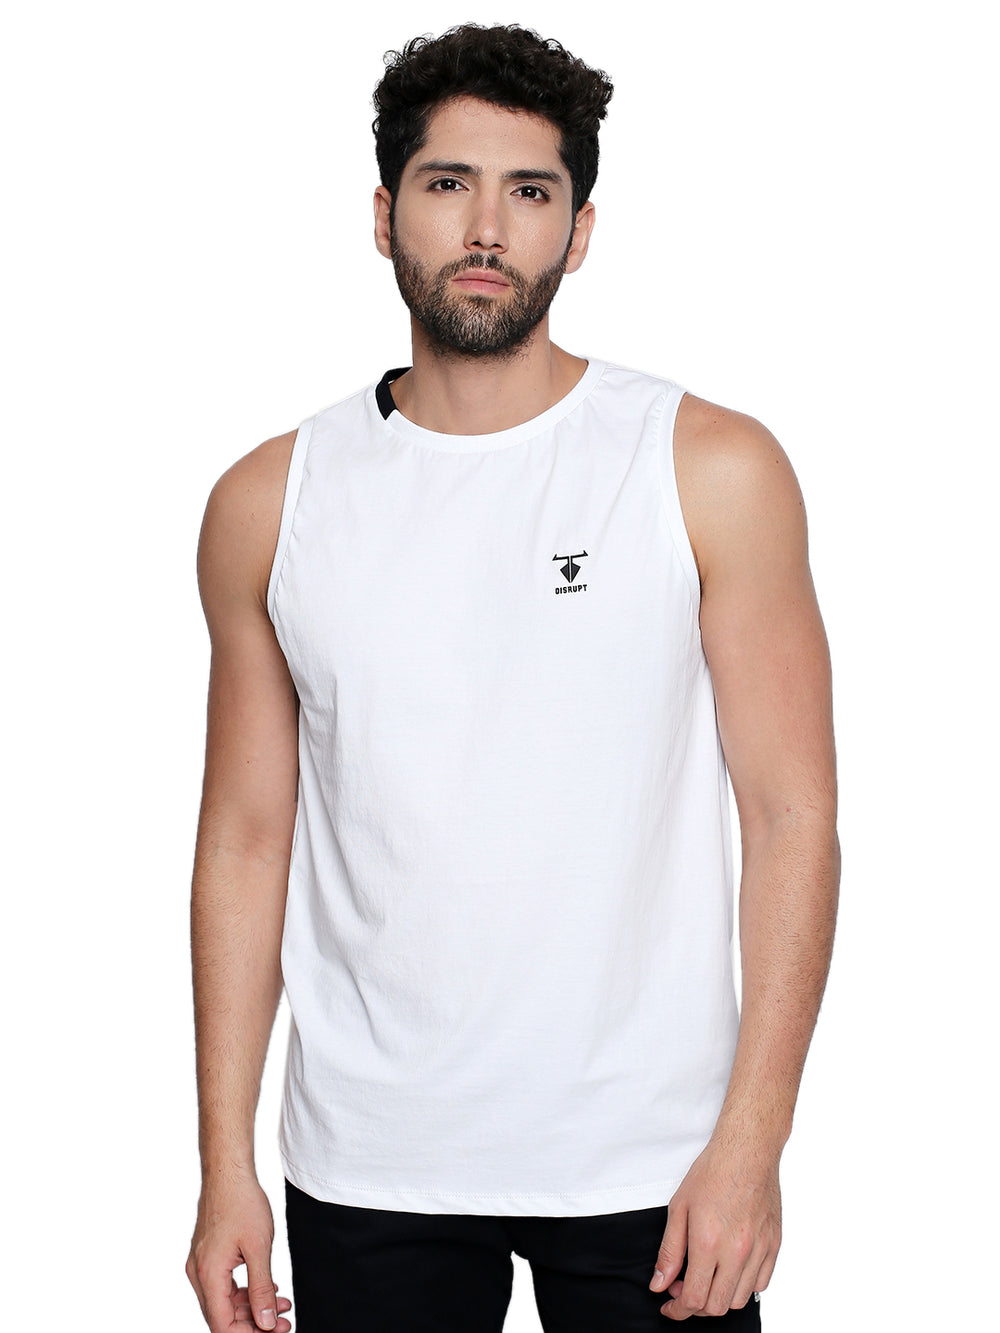 Disrupt Logo Print White Cotton Vest